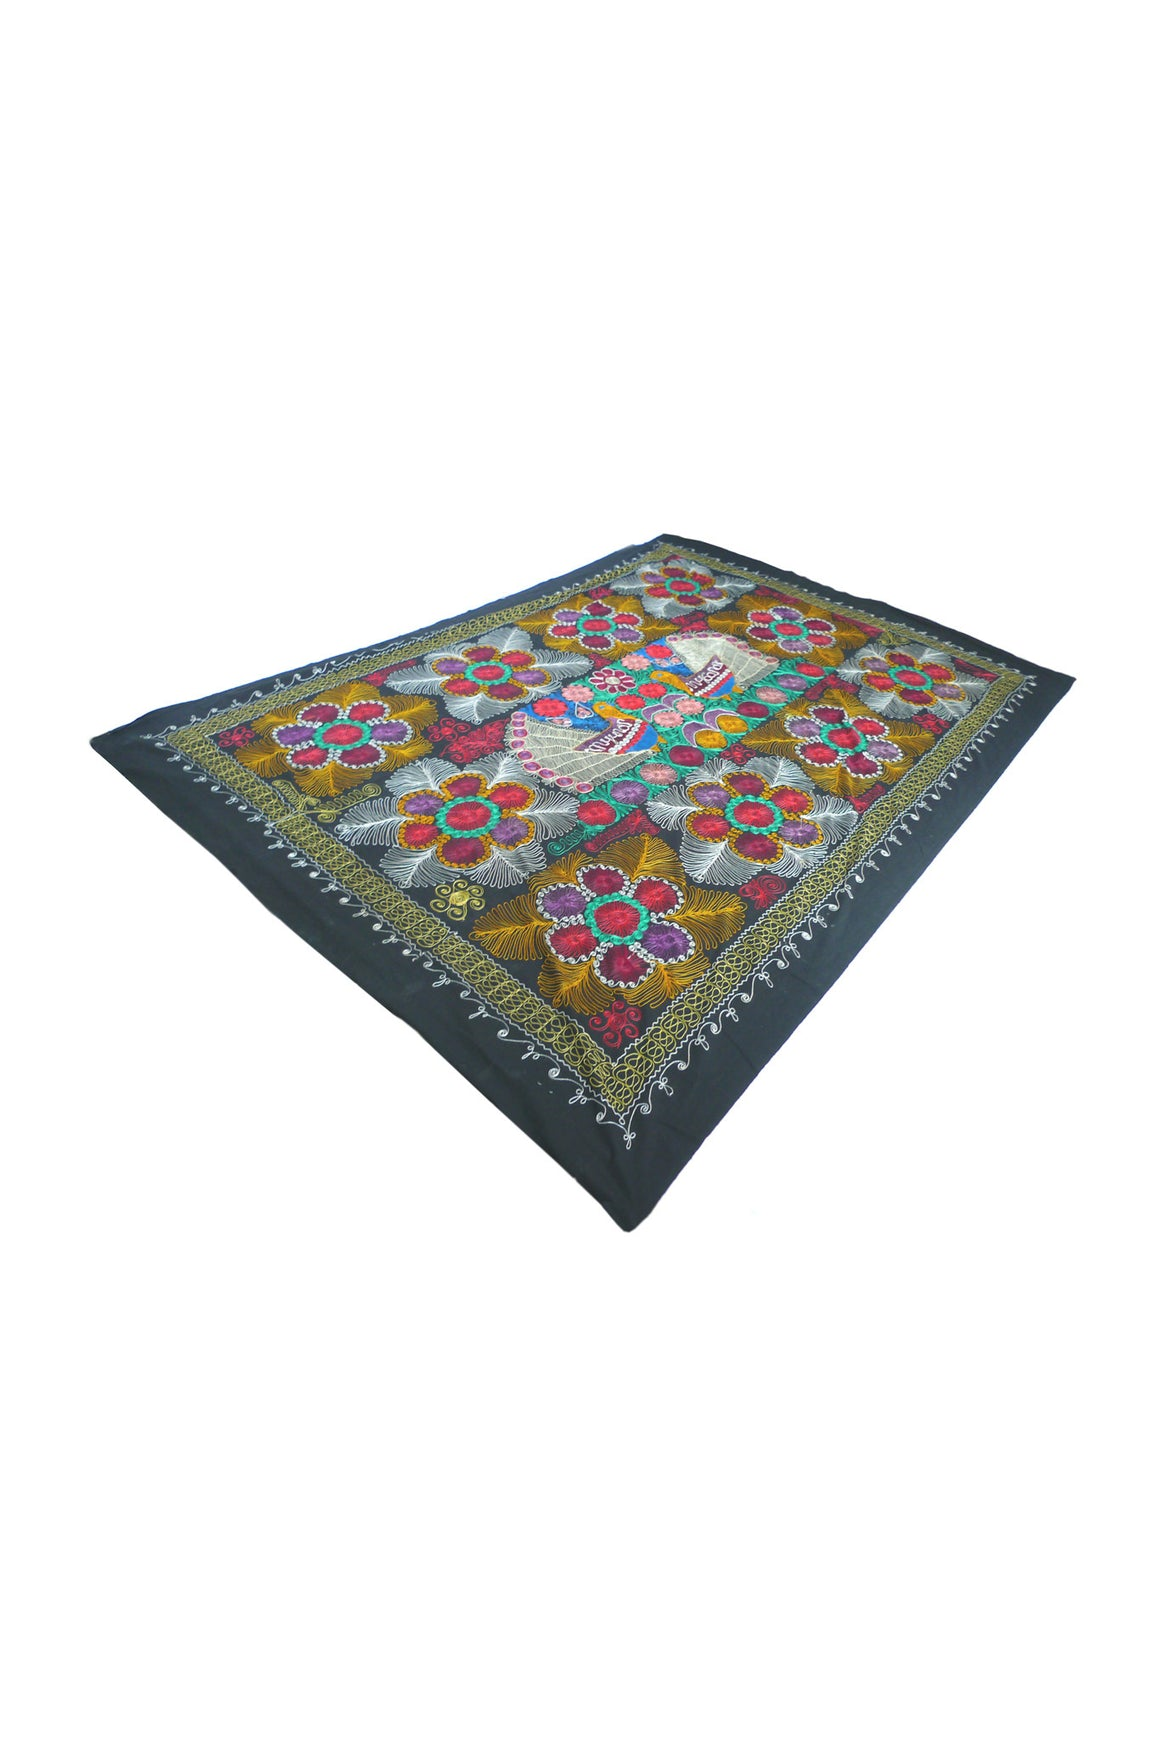 20th Century Embroidered Silk Suzani Tapestry